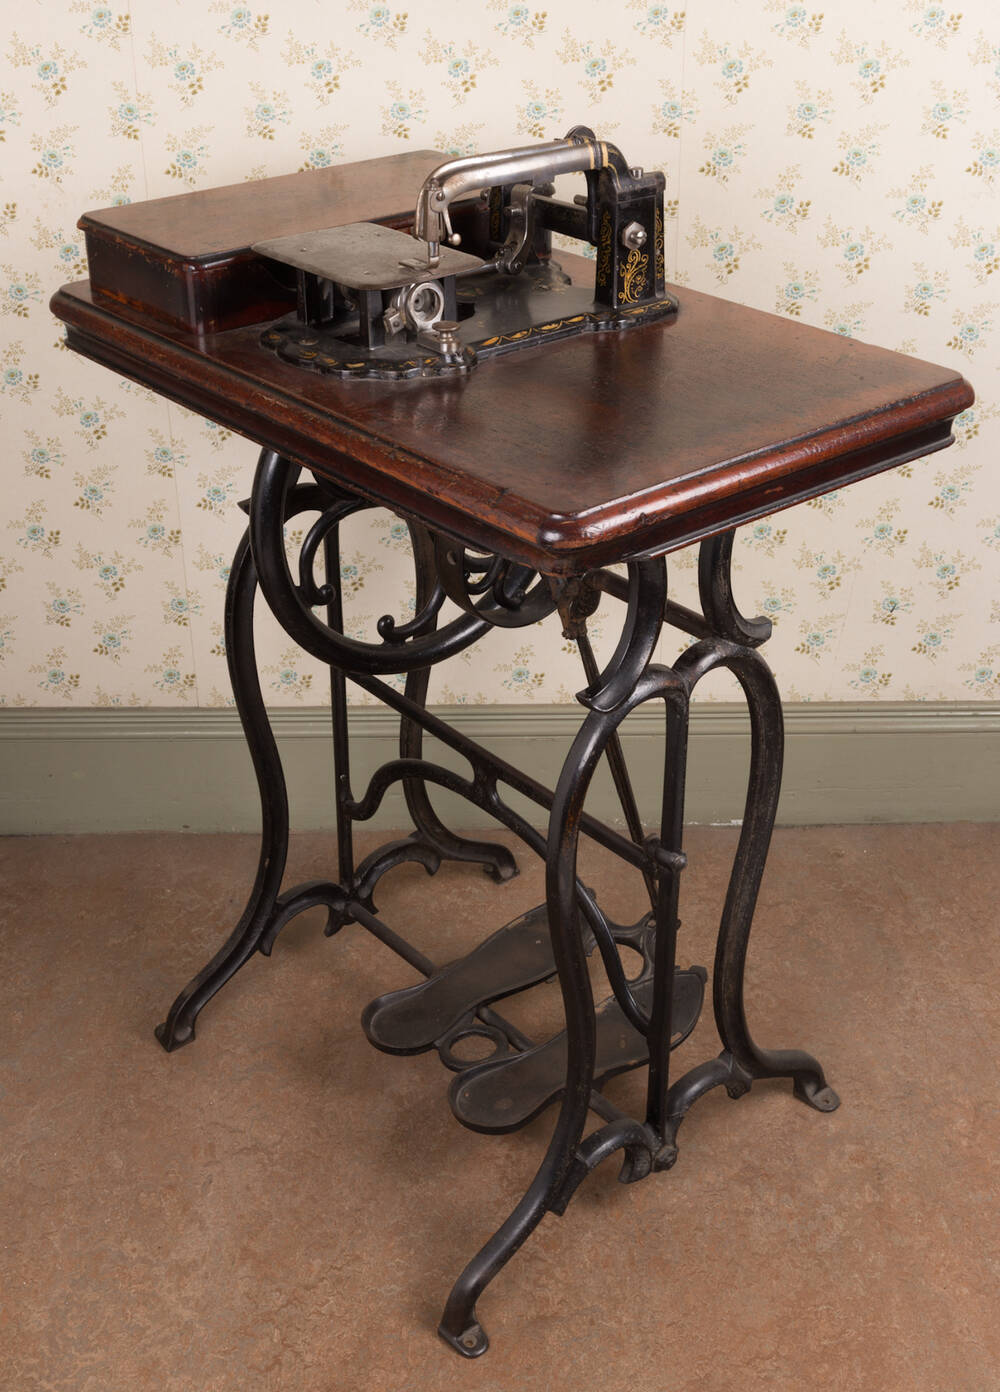 An 1860s Wheeler & Wilson double-thread lock-stitch sewing machine with metal treadle sandals.